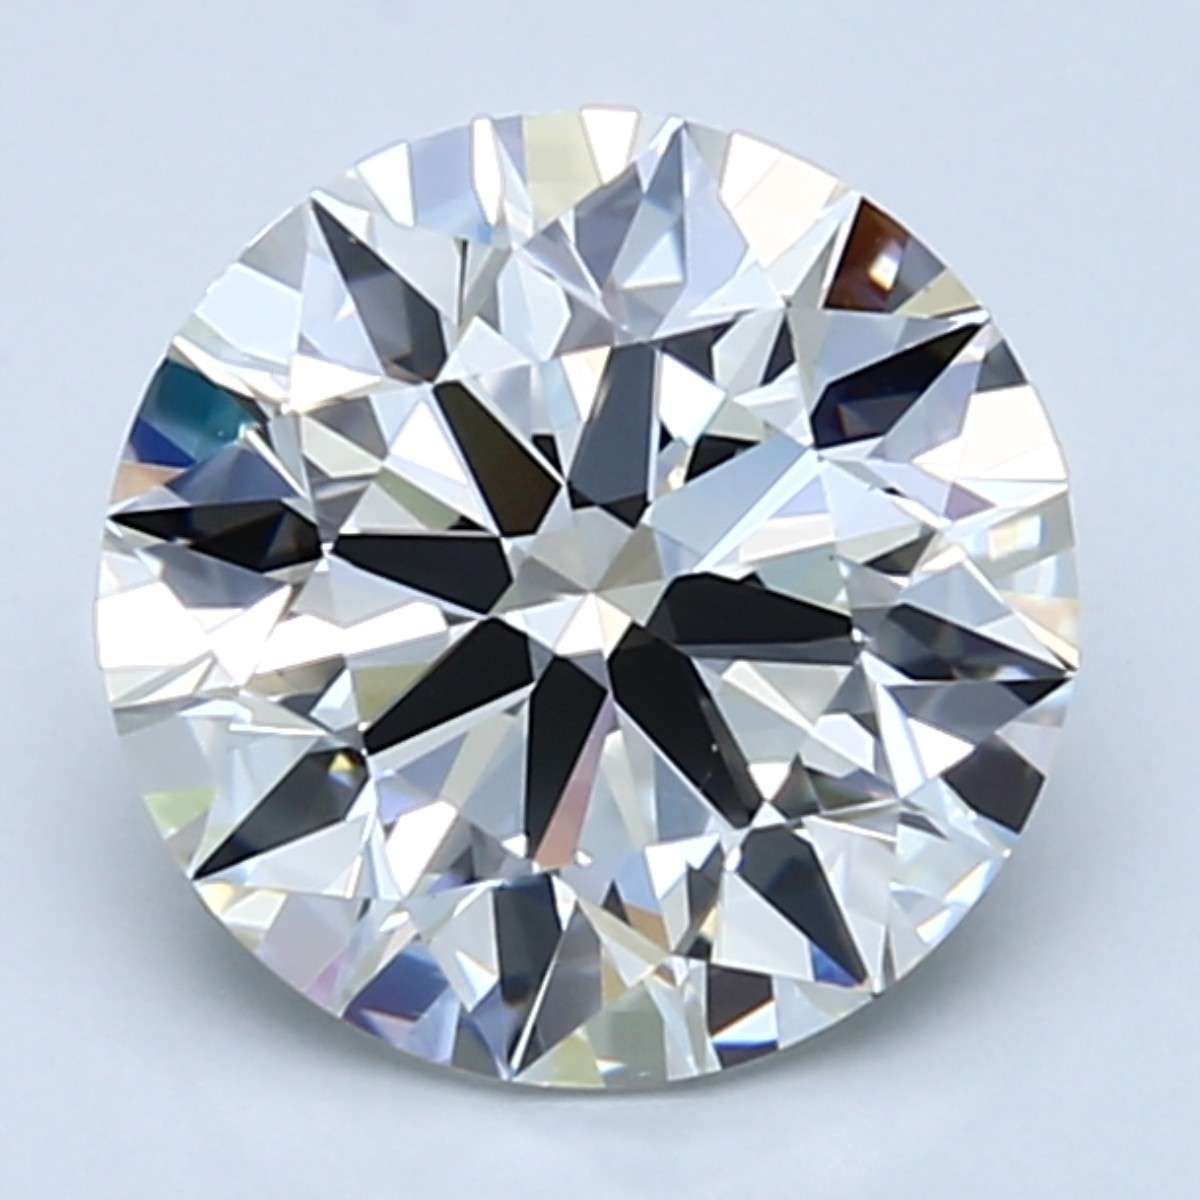 2.5 carat I color diamond